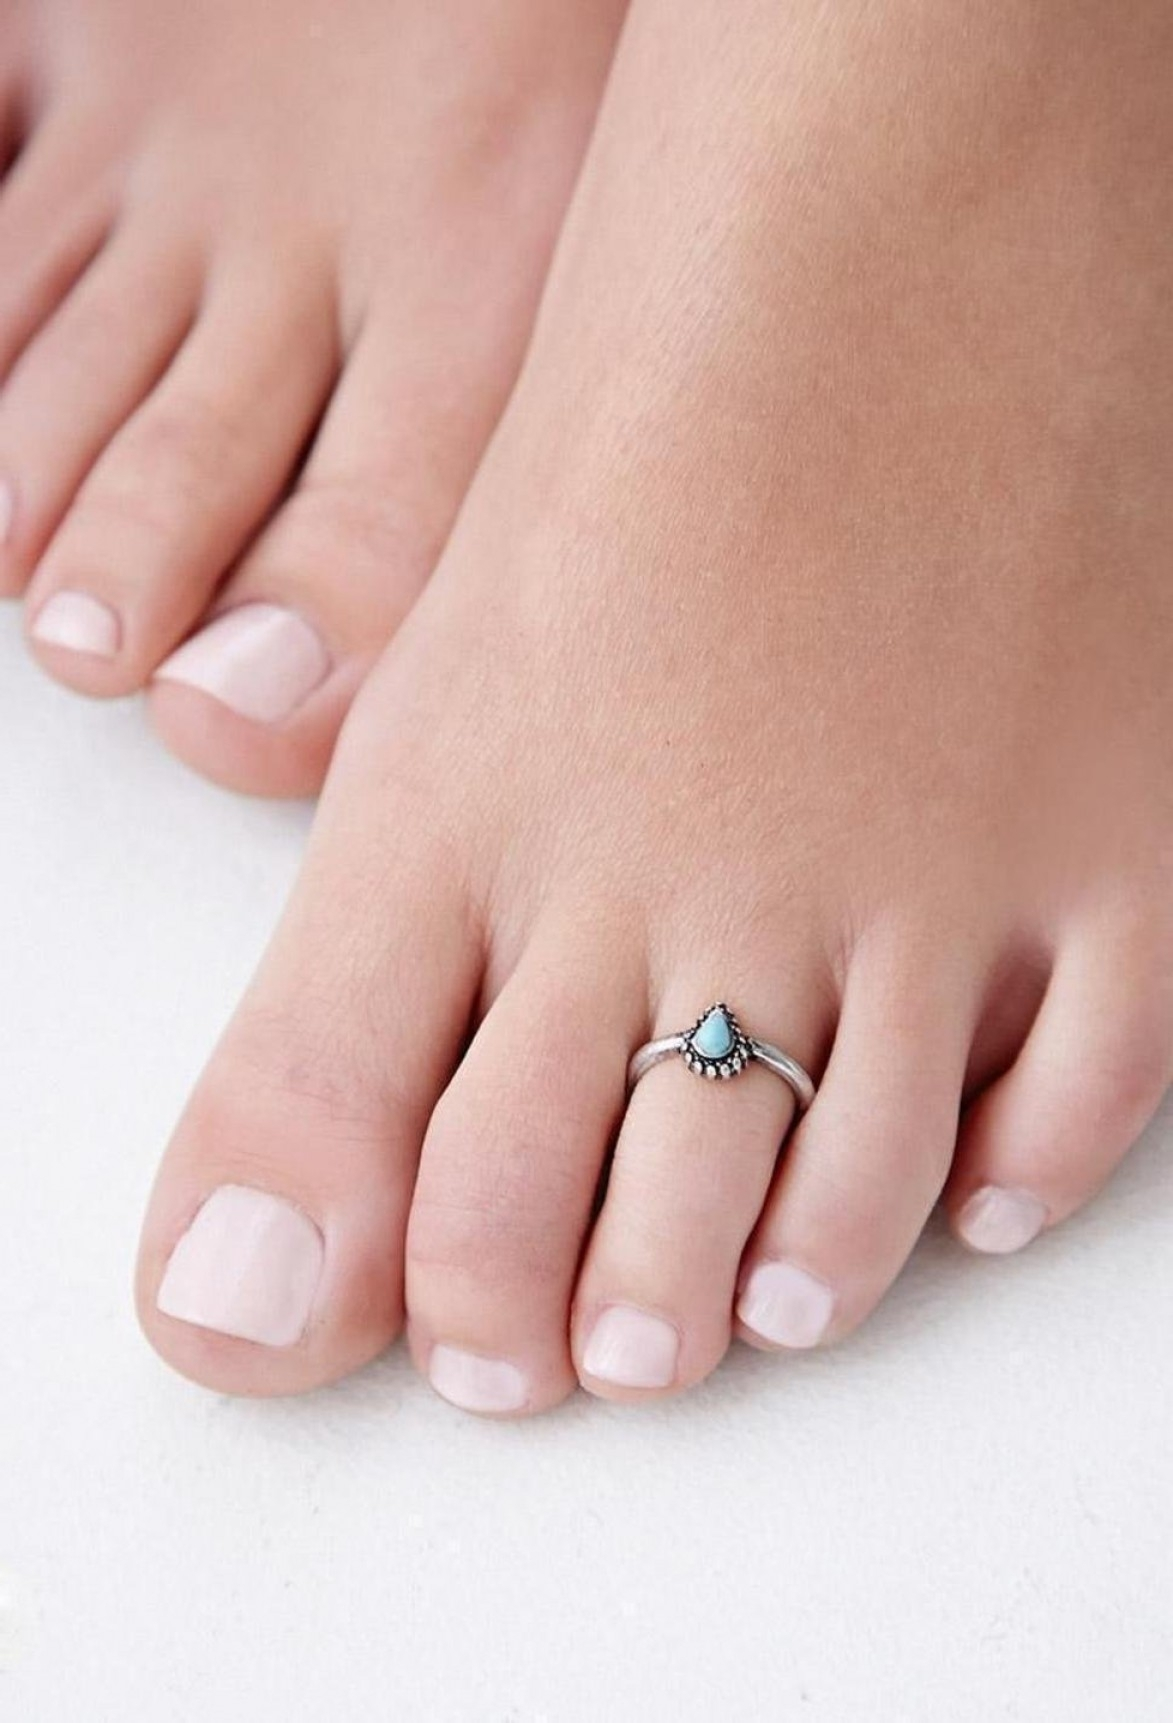 Affordable & Comfortable Toe Rings For Women | Trends4us Inside Most Up To Date Permanent Toe Rings (View 12 of 15)